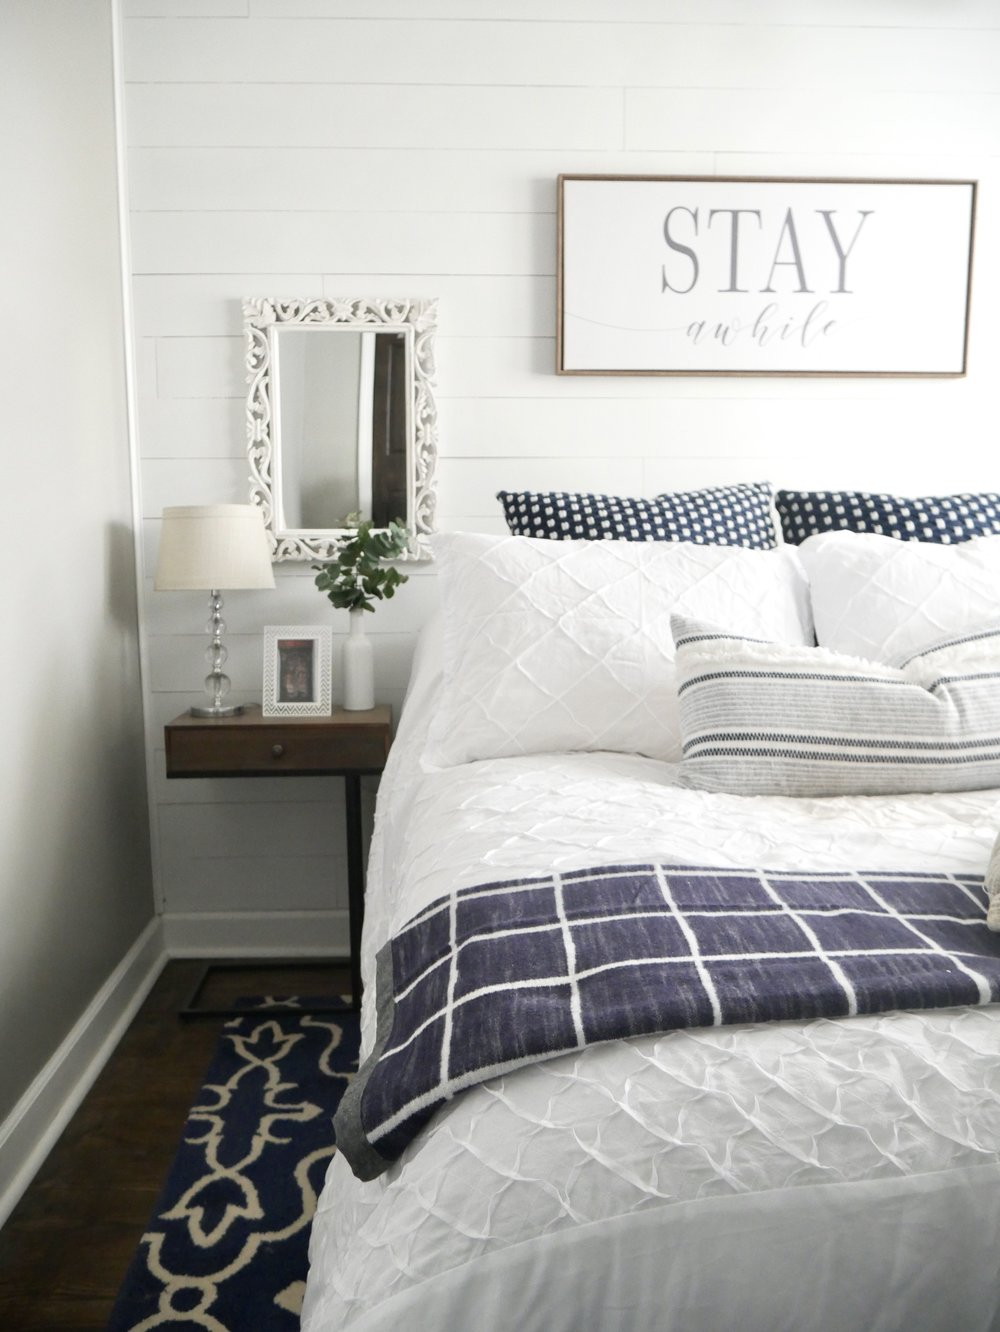 Our Fifties Fixer Upper: Guest Bedroom Sources